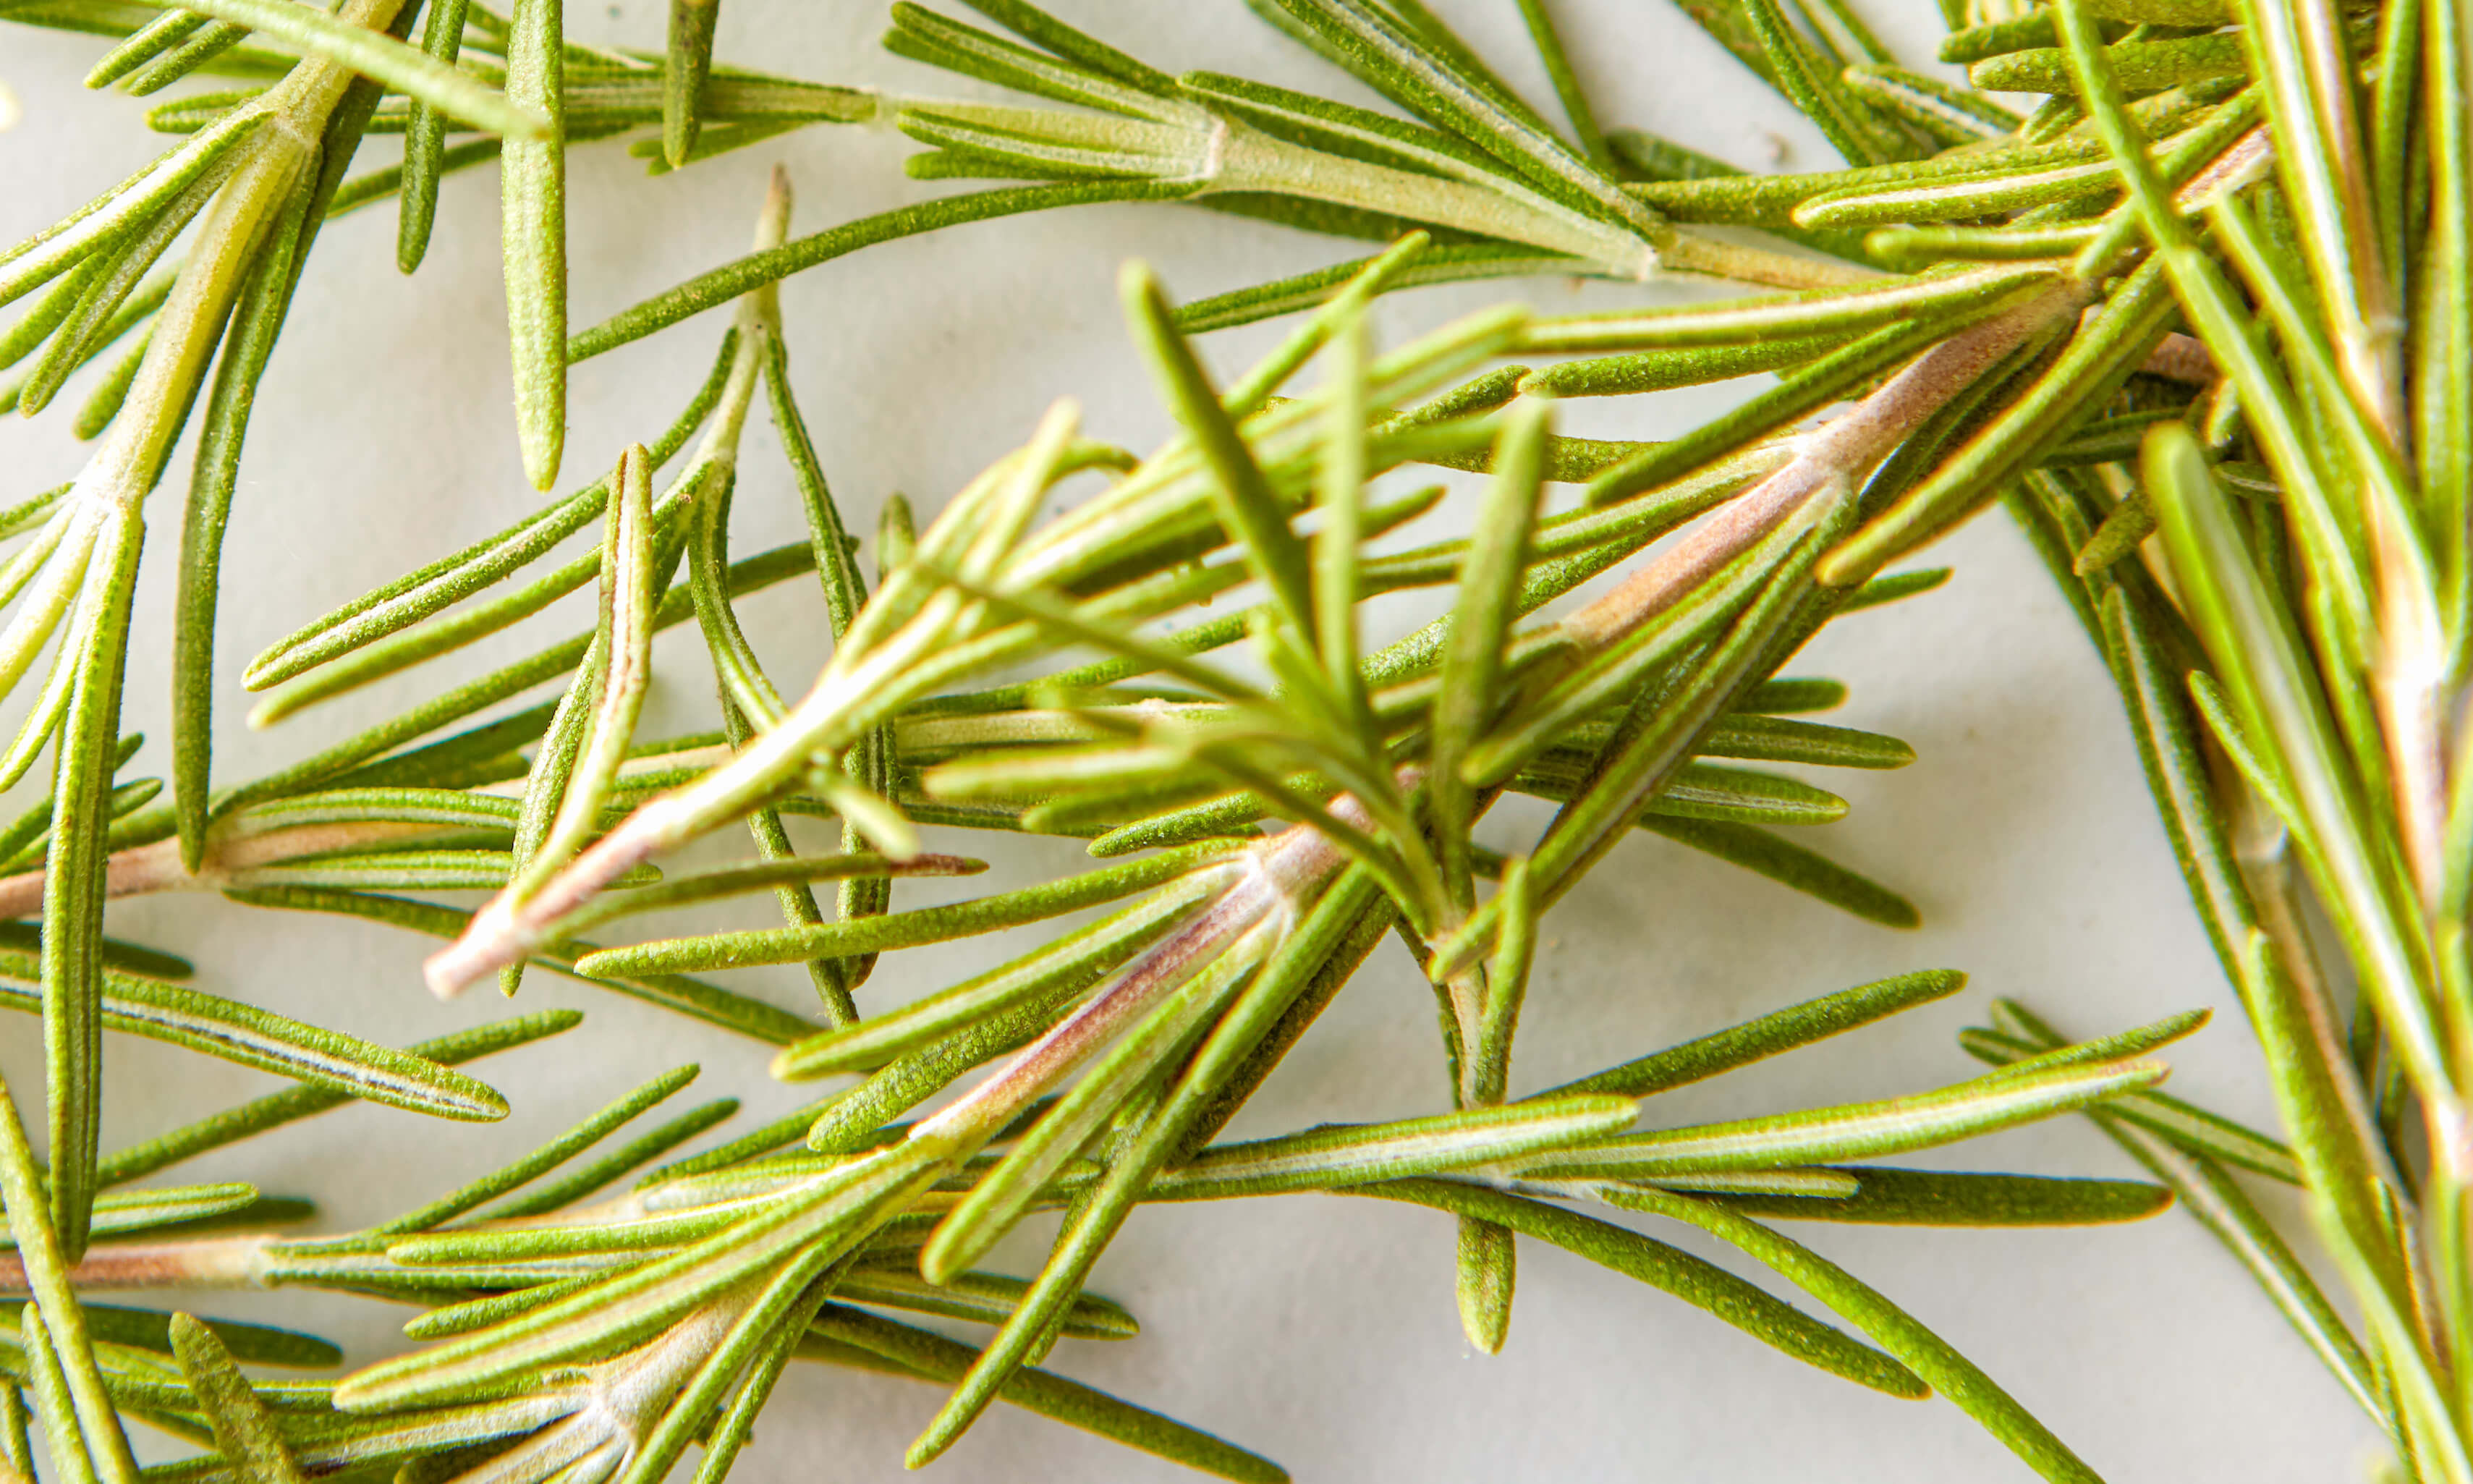 Rosemary Oil Uses & Benefits